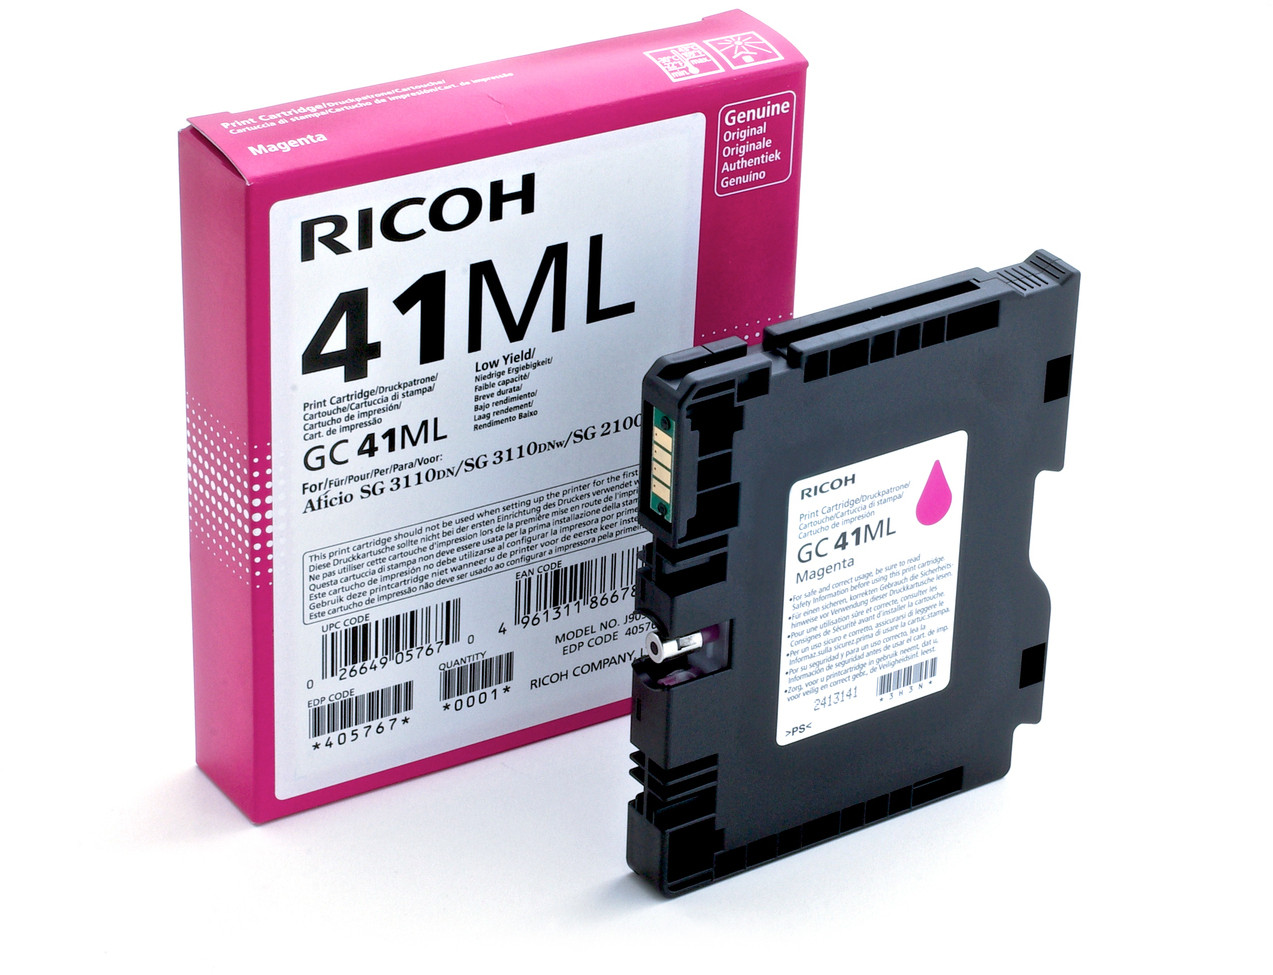 Ricoh 405767 GC41ML Magenta Gel Ink 600